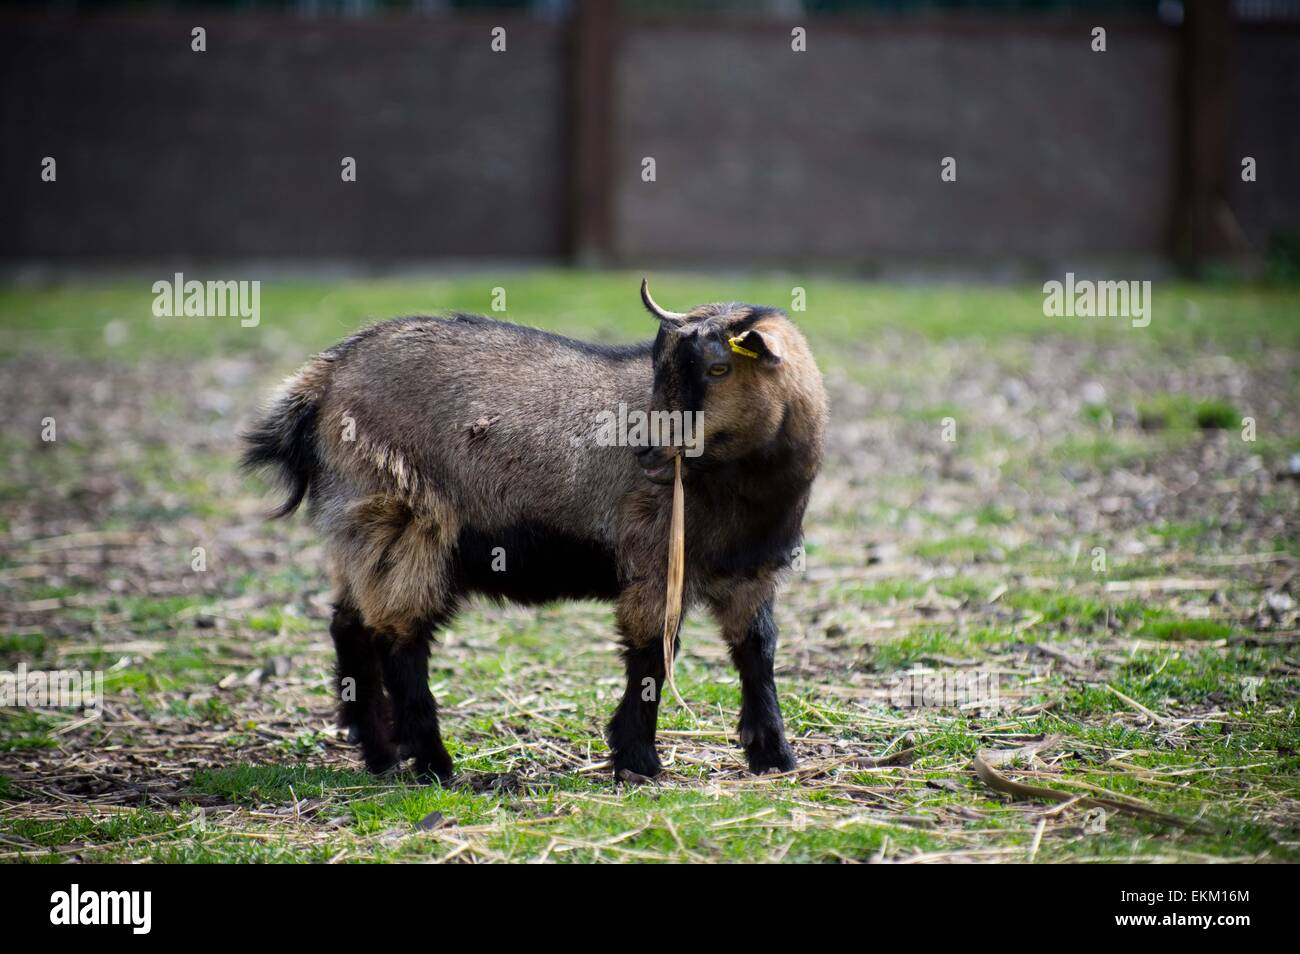 London, United Kingdom. 11th Apr, 2015. The racing goat 'Cambridge' seen before the race. Annual goat racing - Stock Image